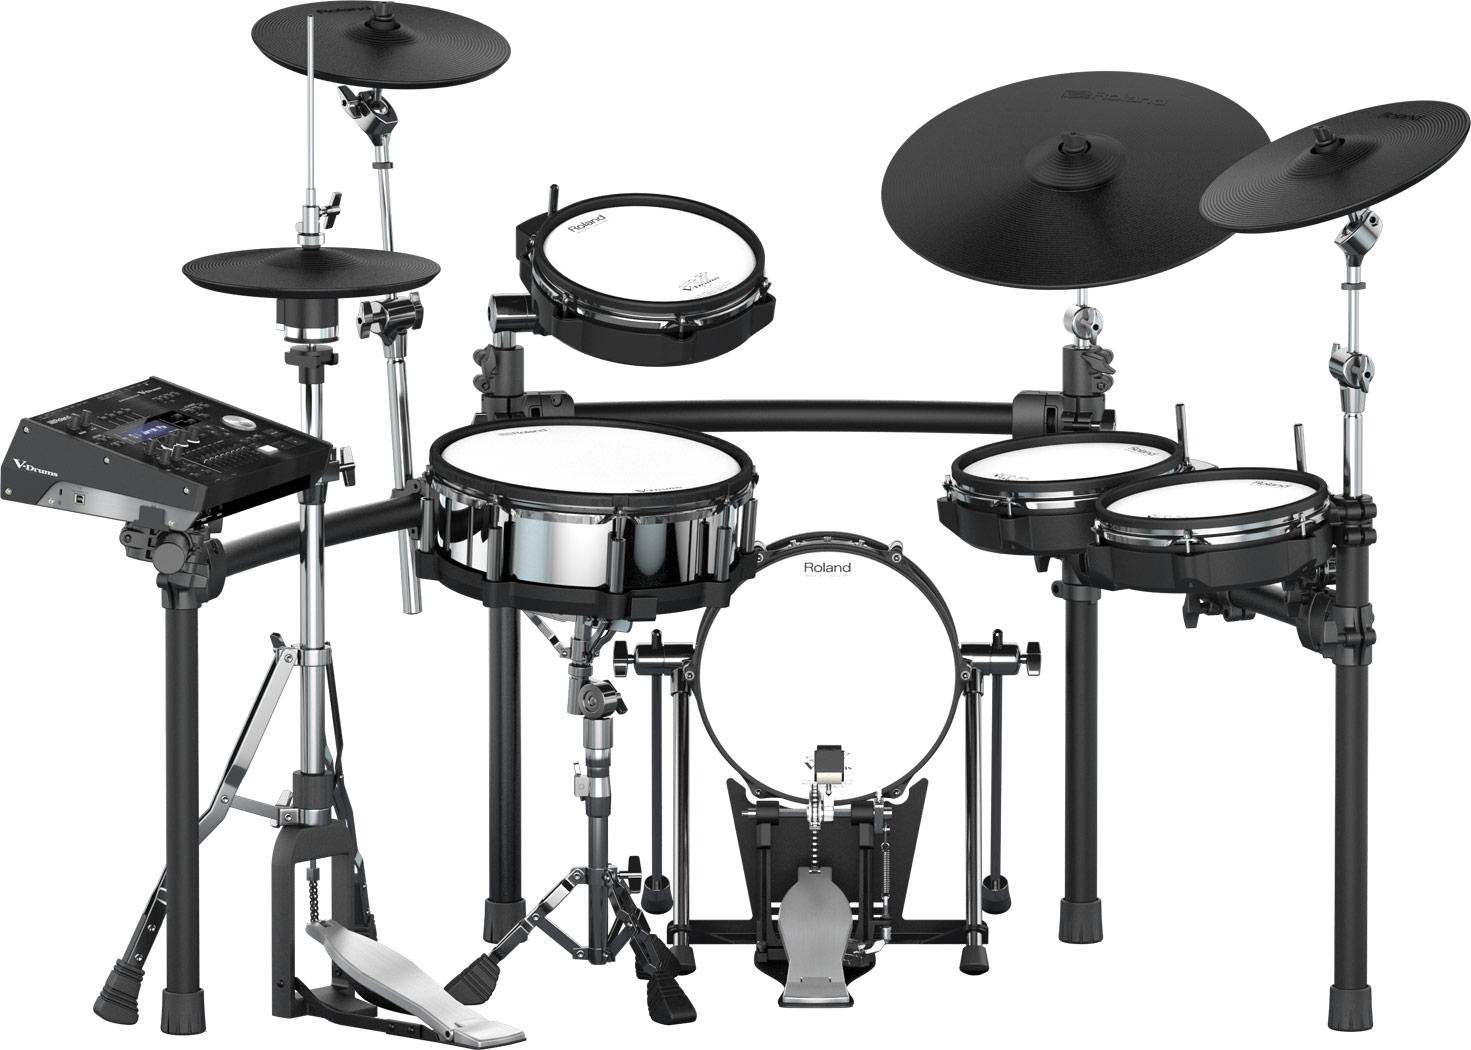 The Roland TD-50K Drum Set